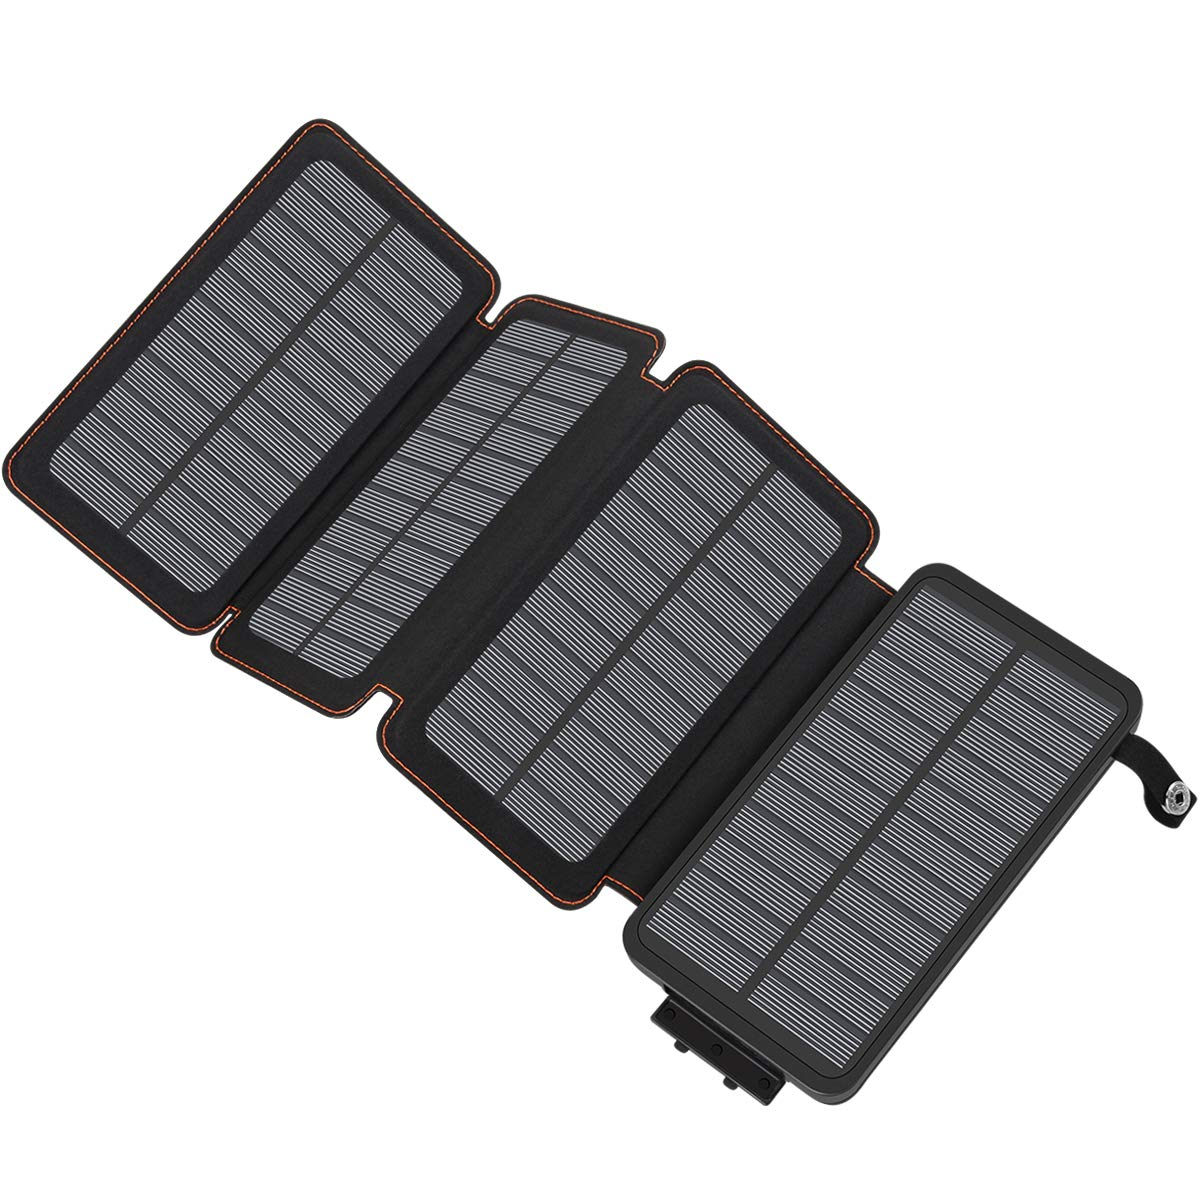 Solar Charger 25000mAh, Hiluckey Portable Power Bank with Dual USB Ports Waterproof Battery Charger for Smartphones and Tablets